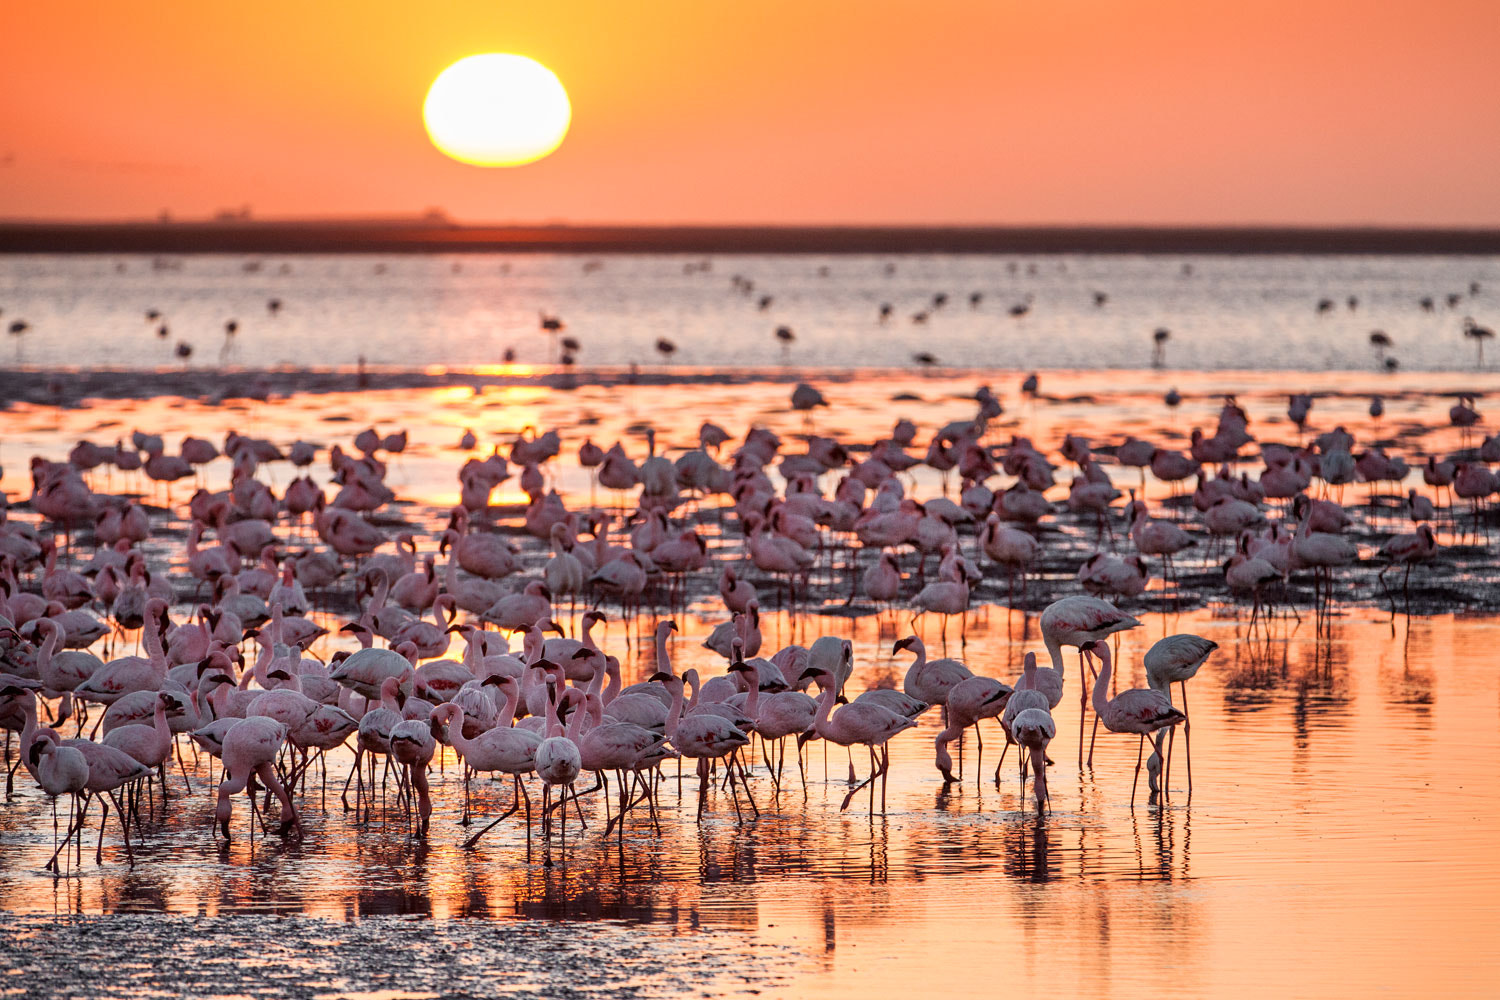 Photograph Flamingo sunsets by Marina Sorokina on 500px